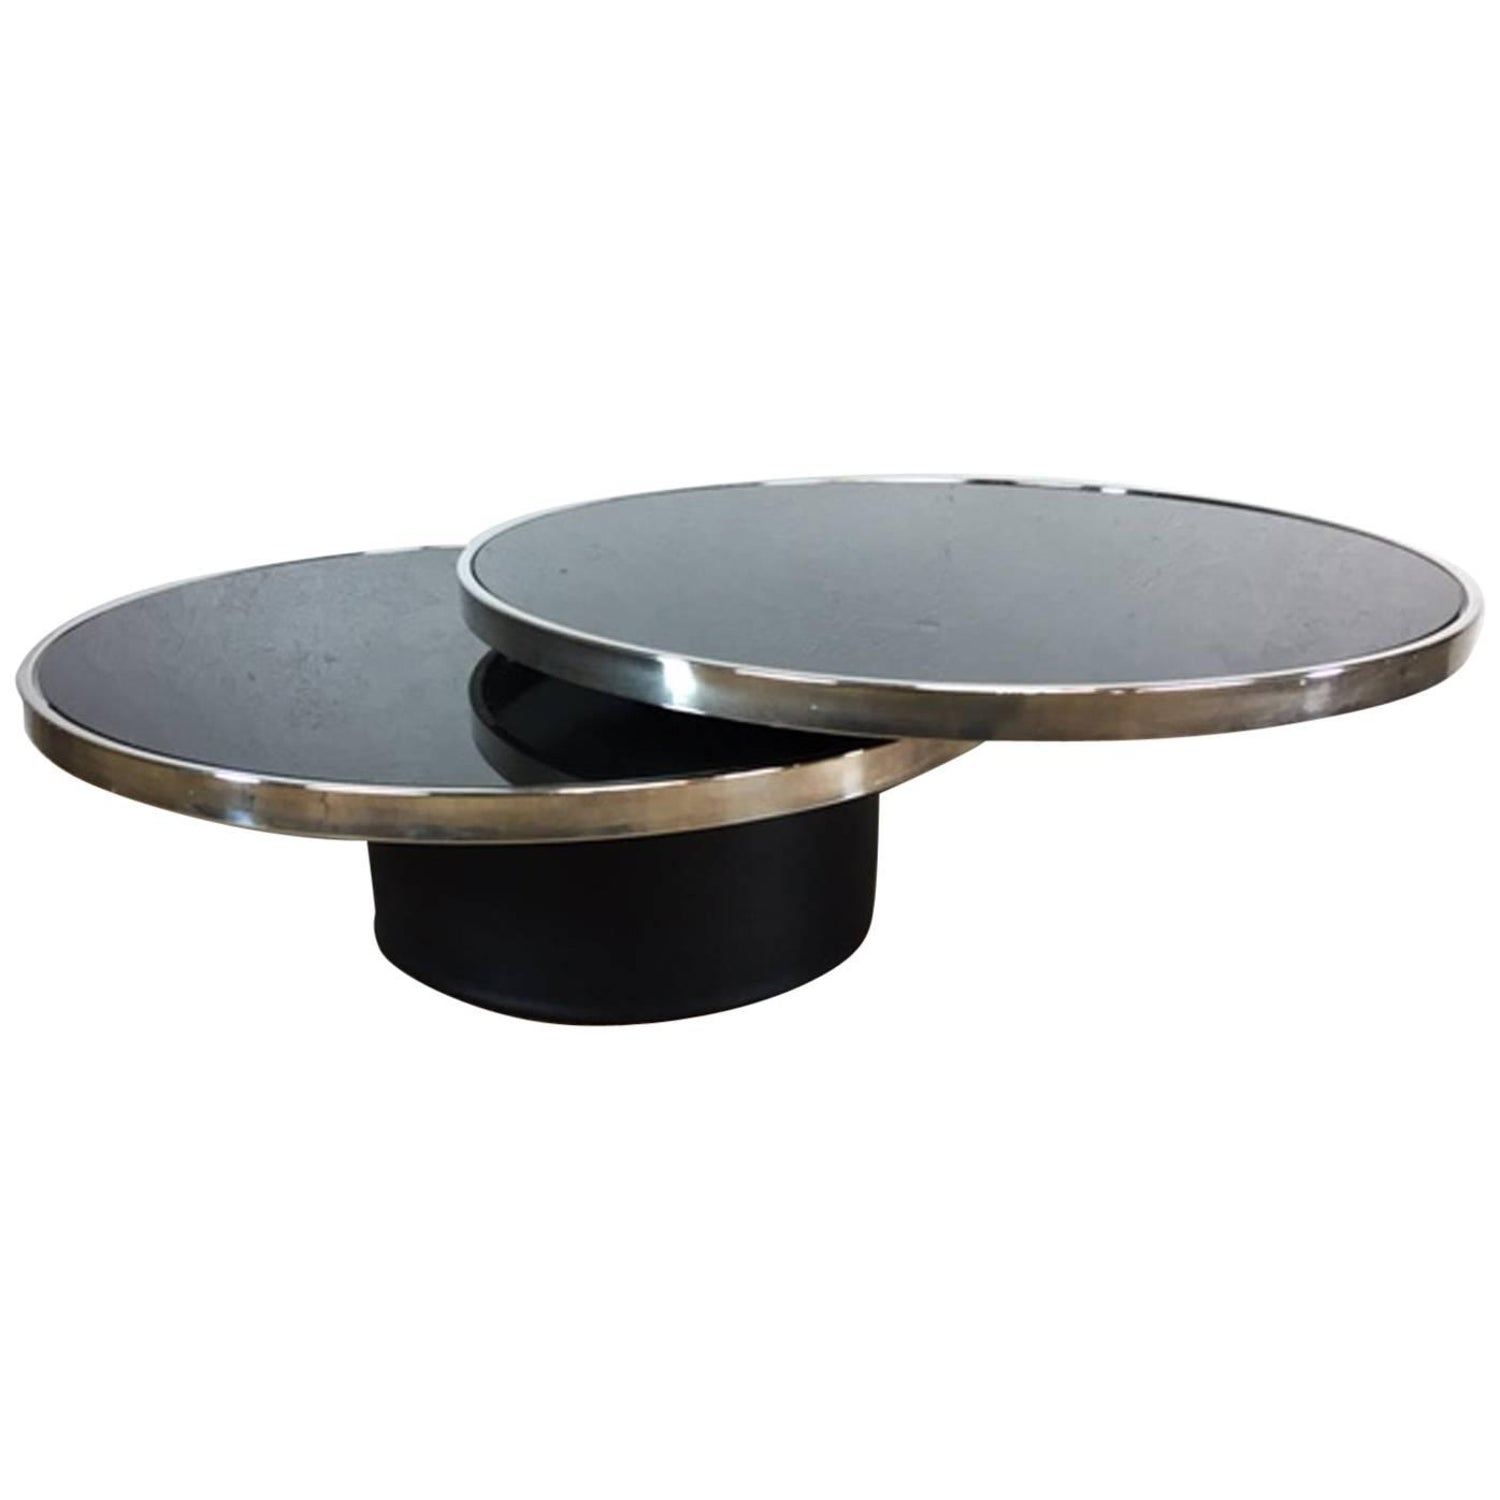 Design Institute America Brass Glass Swivel Coffee Table at 1stdibs